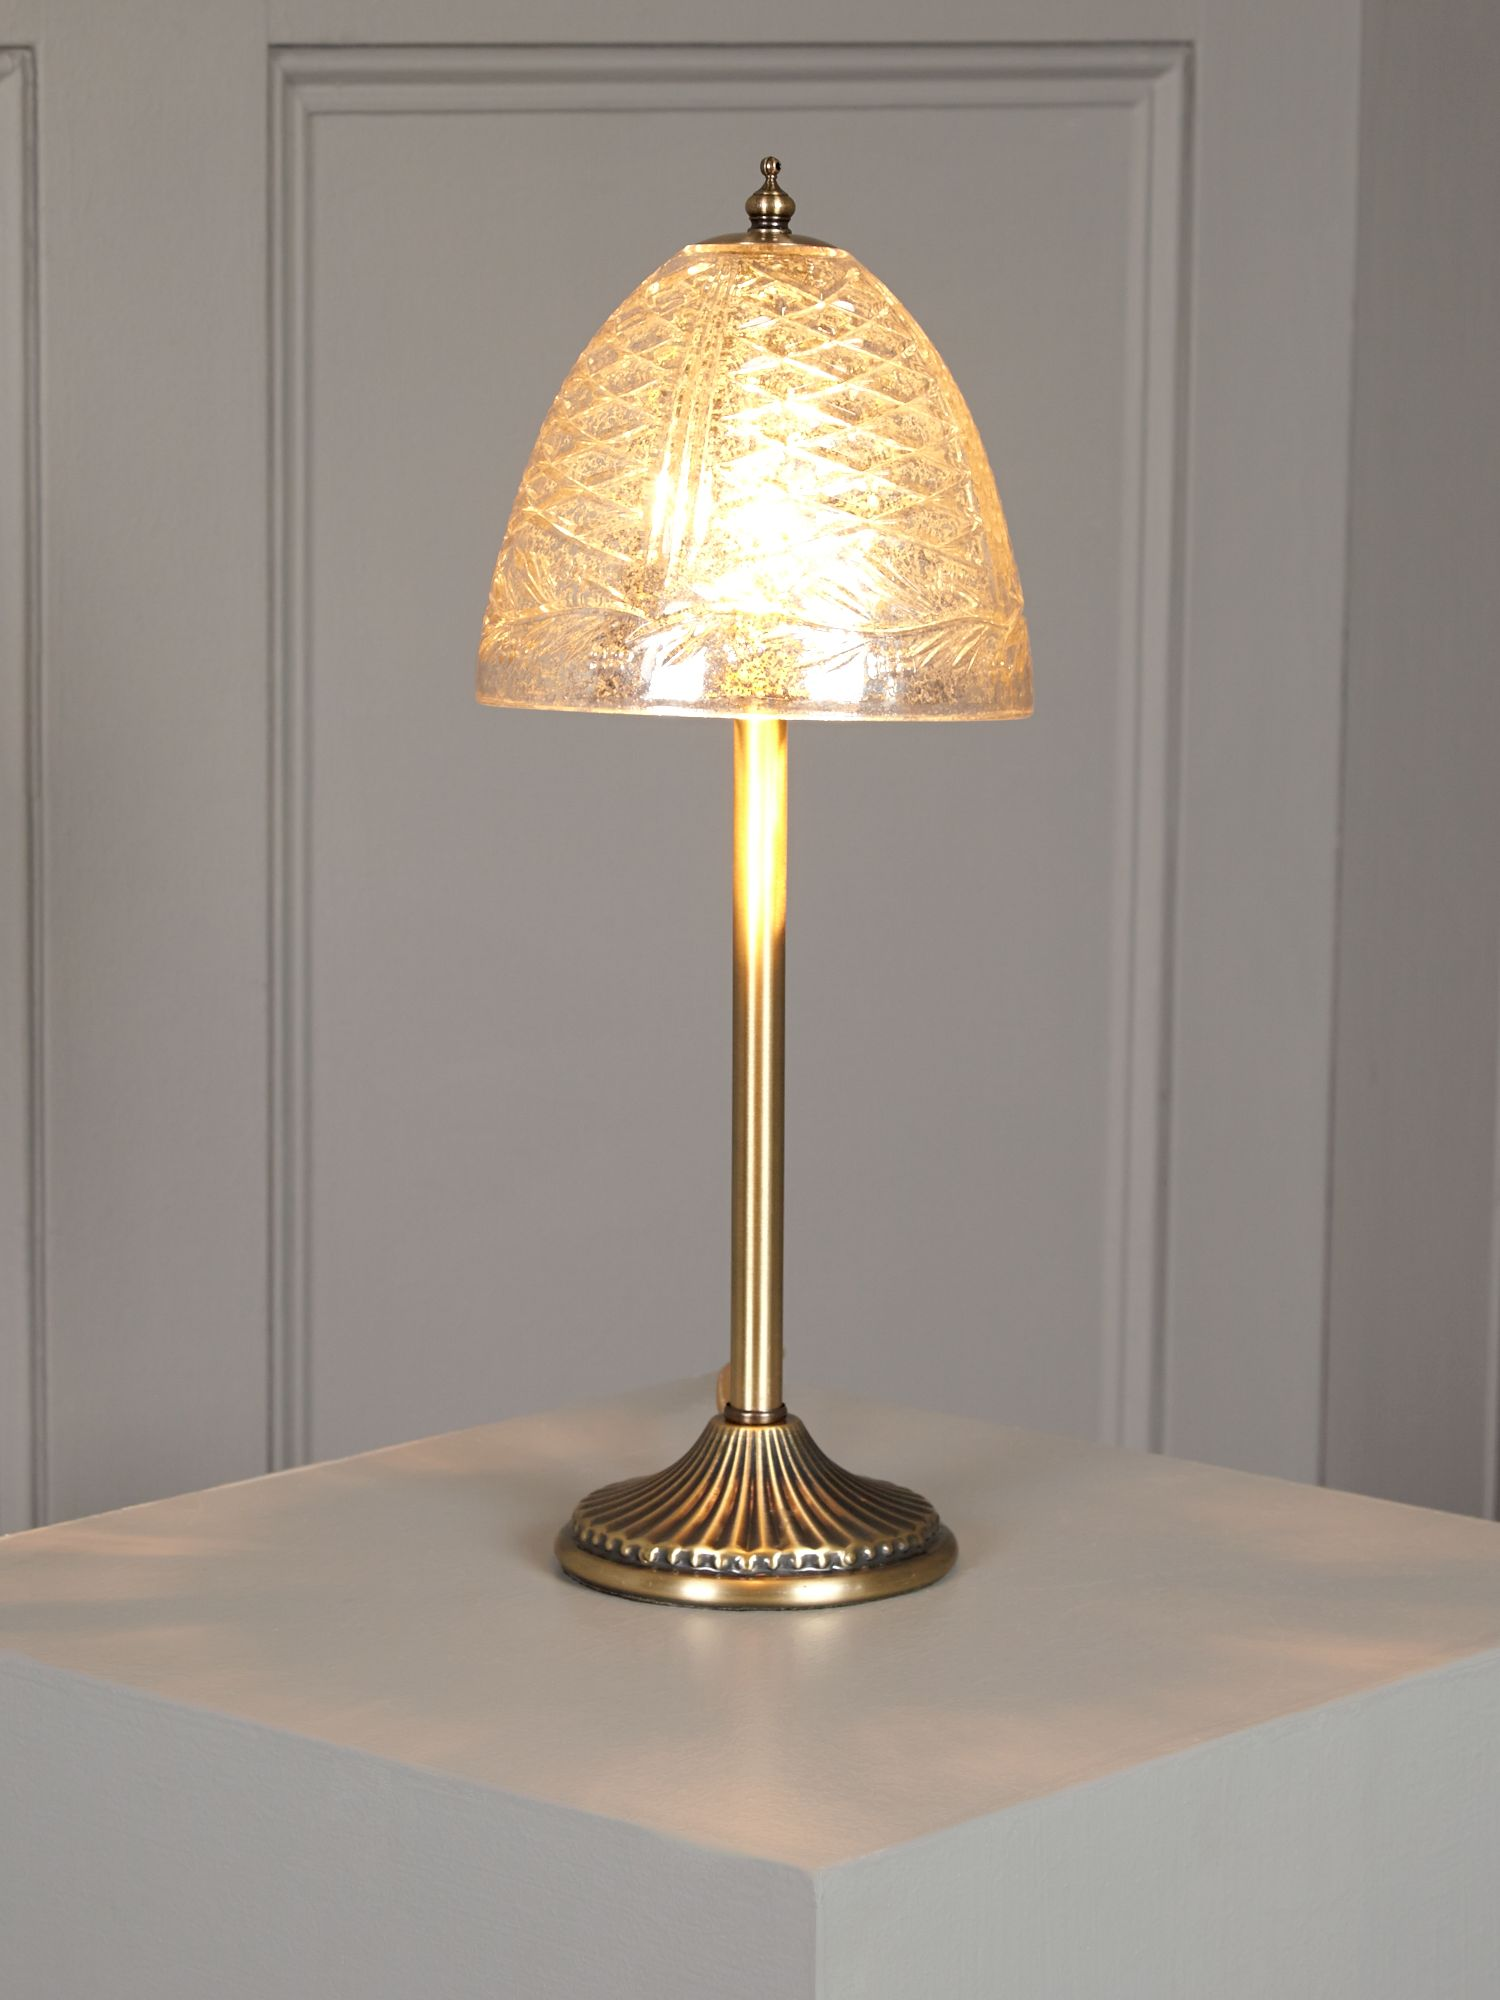 Sofia Glass Shade Table Lamp